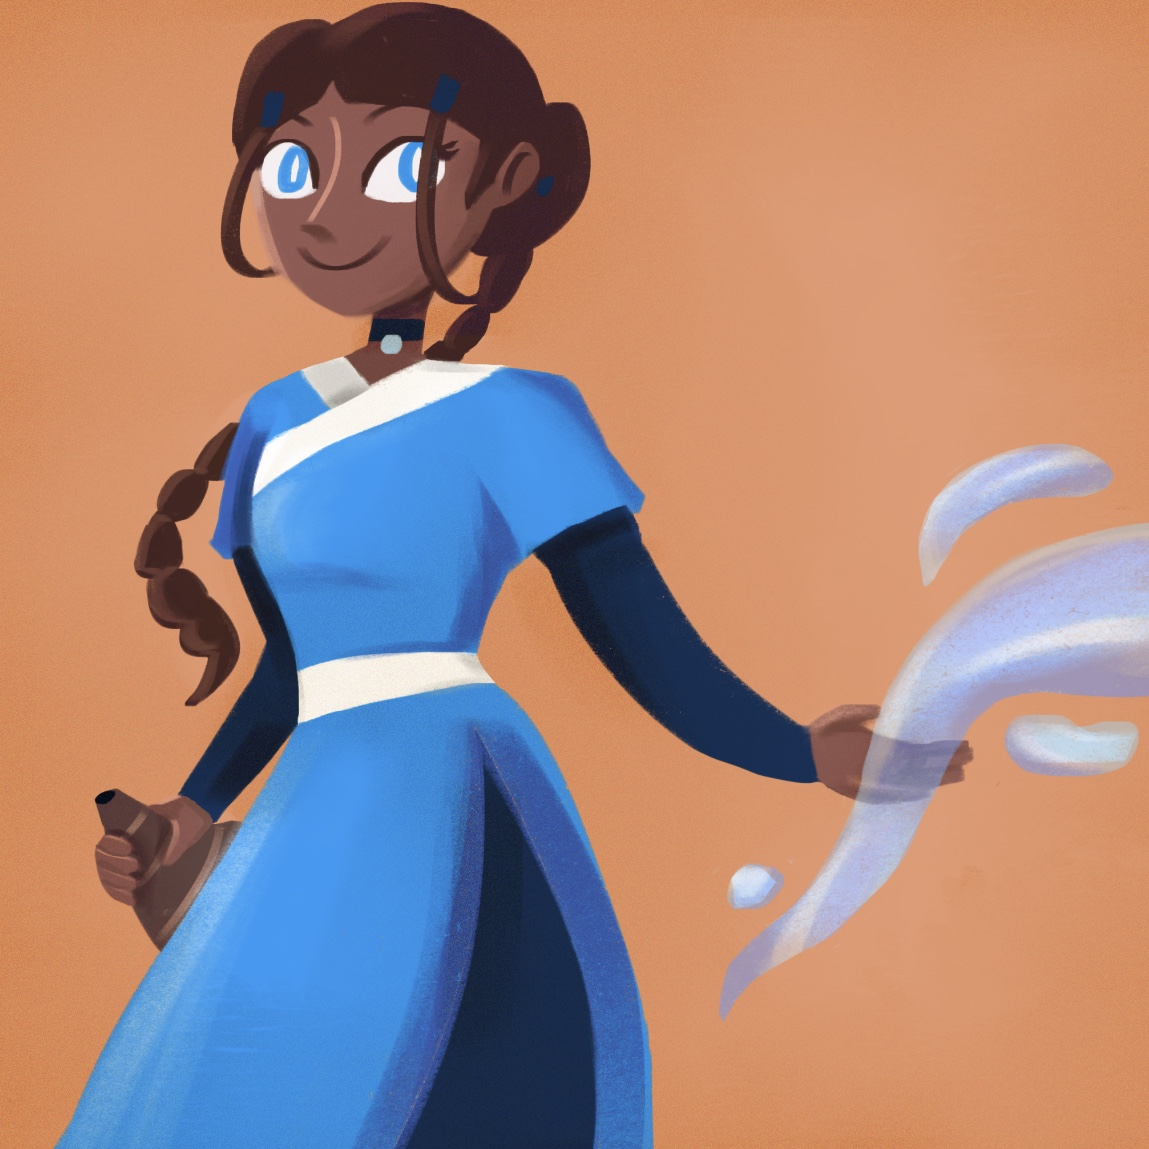 [Fanart] Katara from Avatar: The Last Airbender